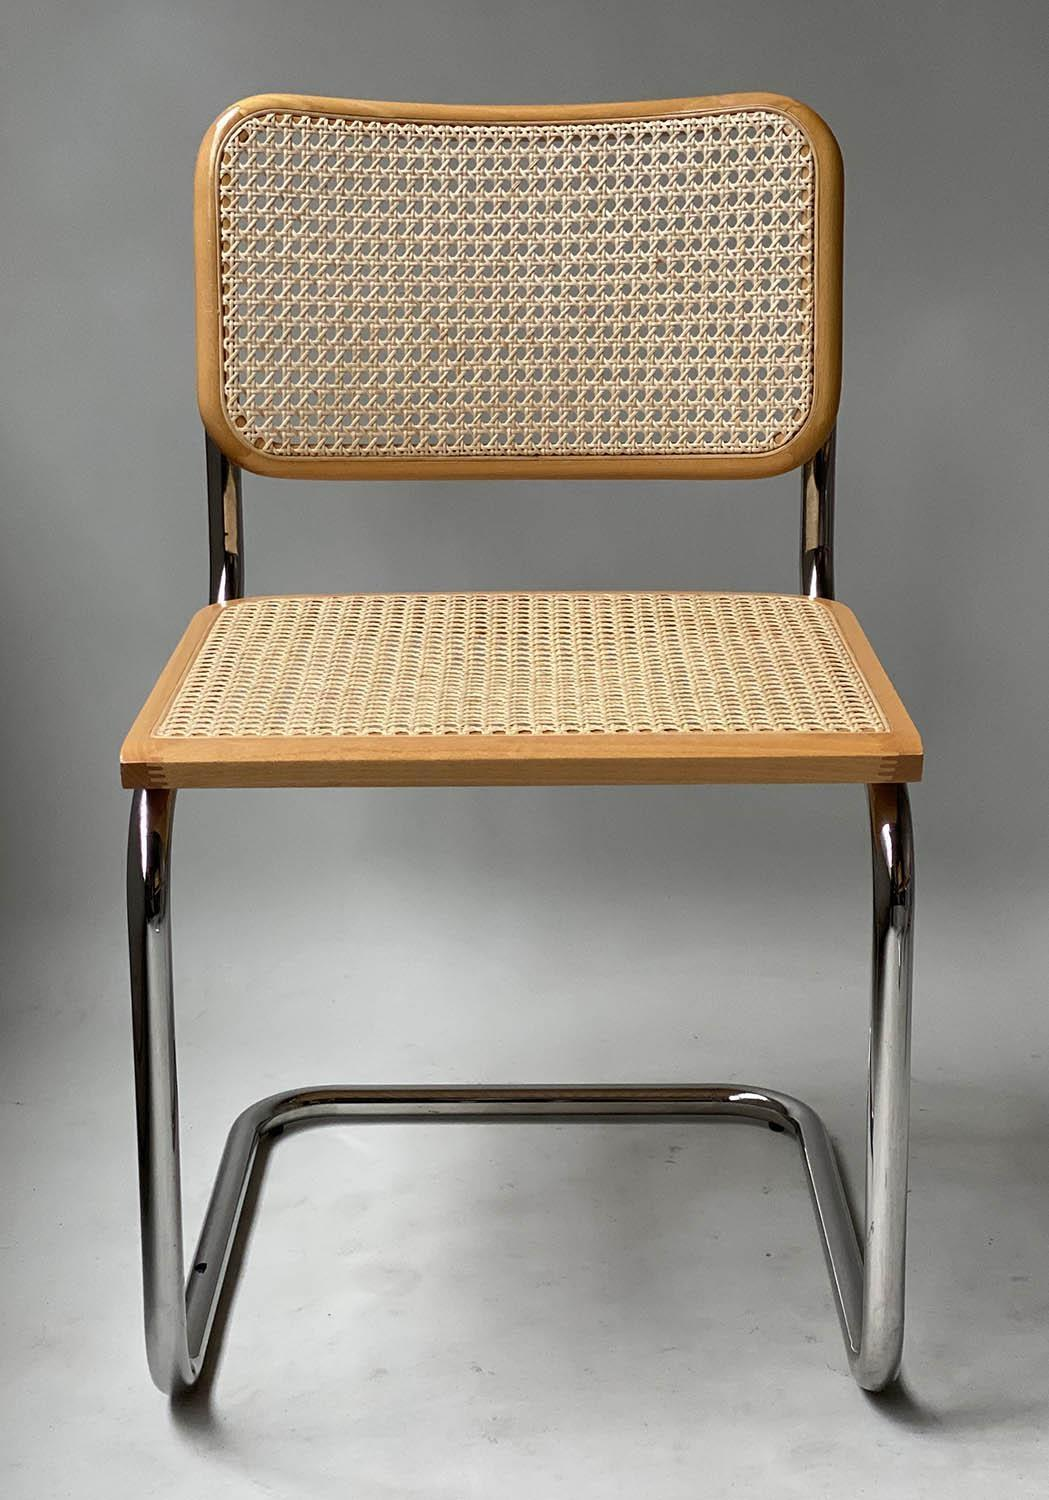 AFTER MARCEL BREUER DINING CHAIRS, Cesca style chairs, a set of six beech wood cane paneled and - Image 9 of 11